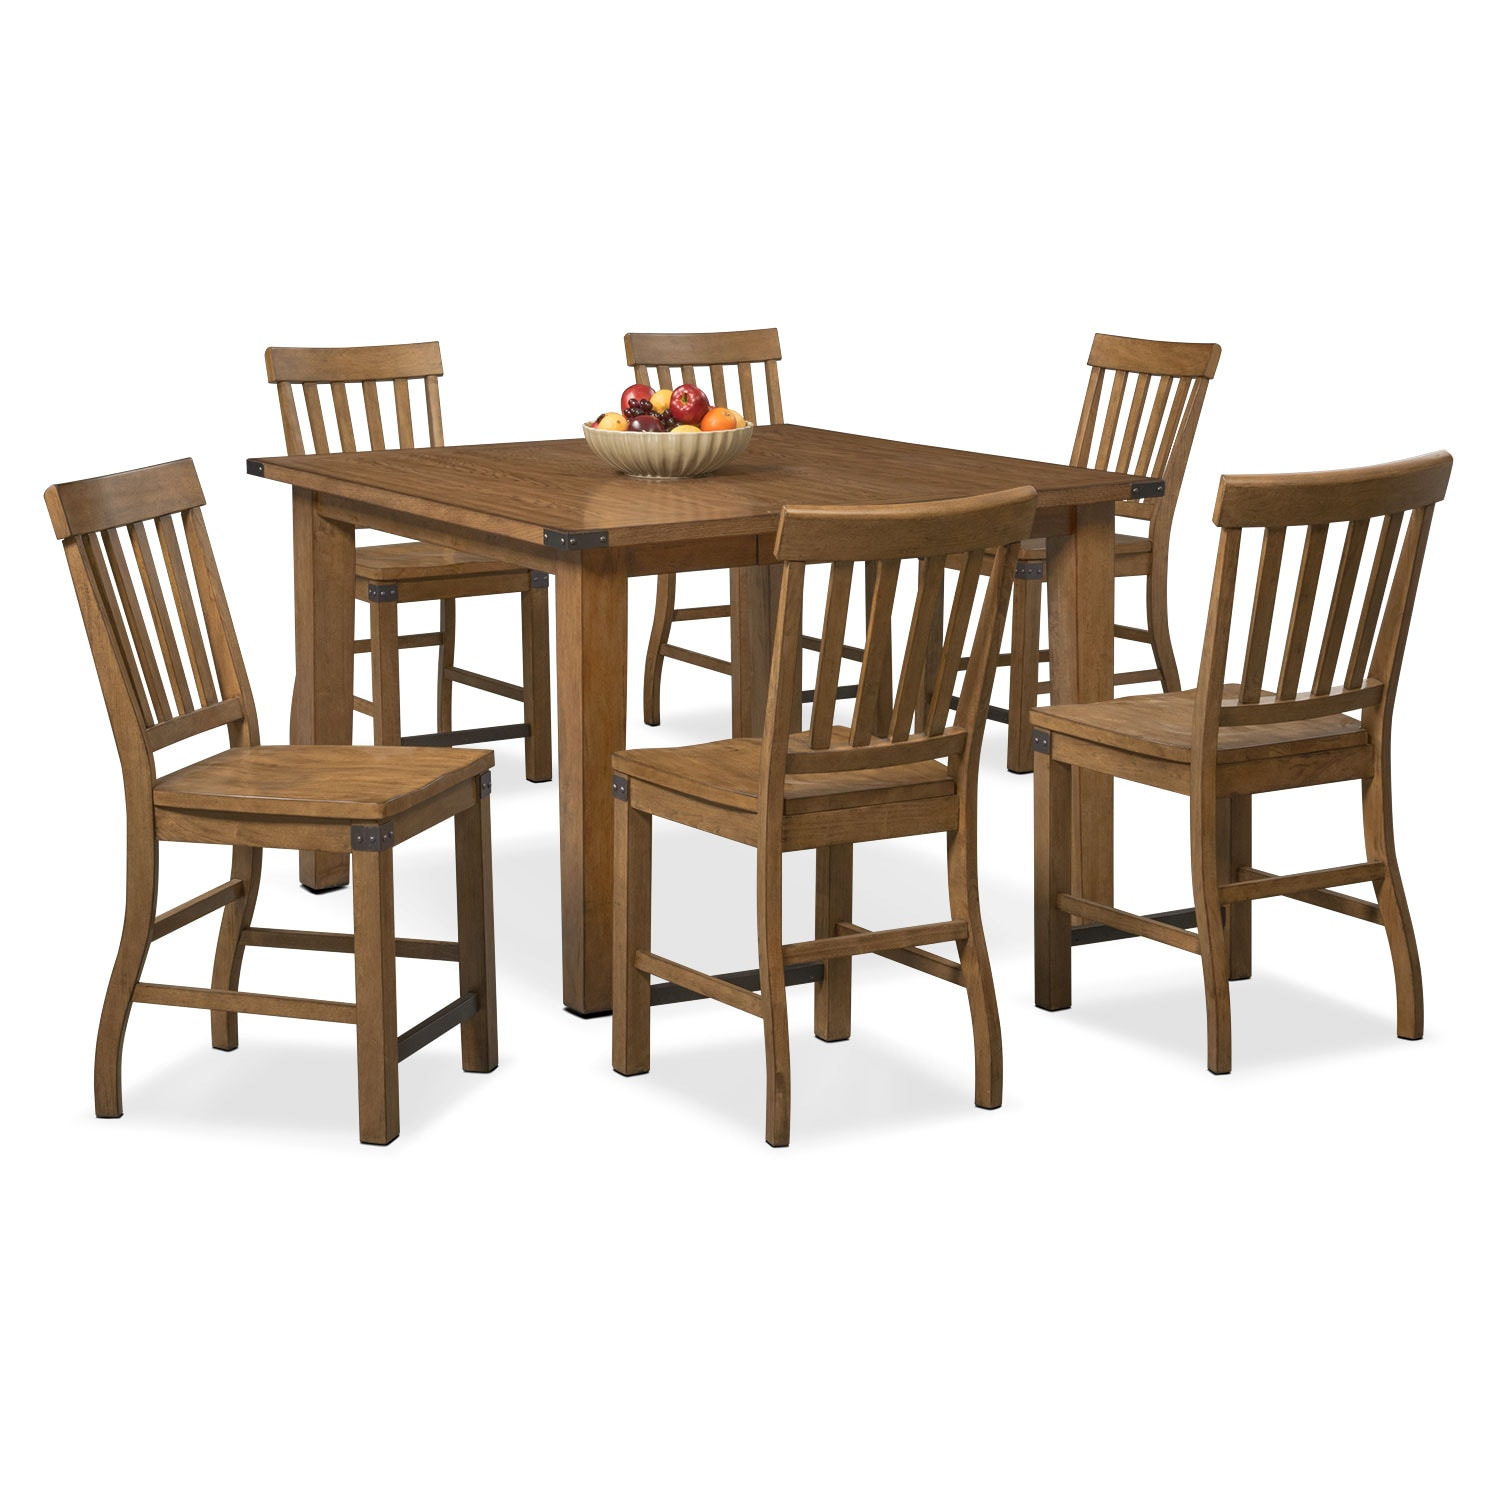 Dining Room Furniture - Salem Counter-Height Table and 6 Chairs - Pecan